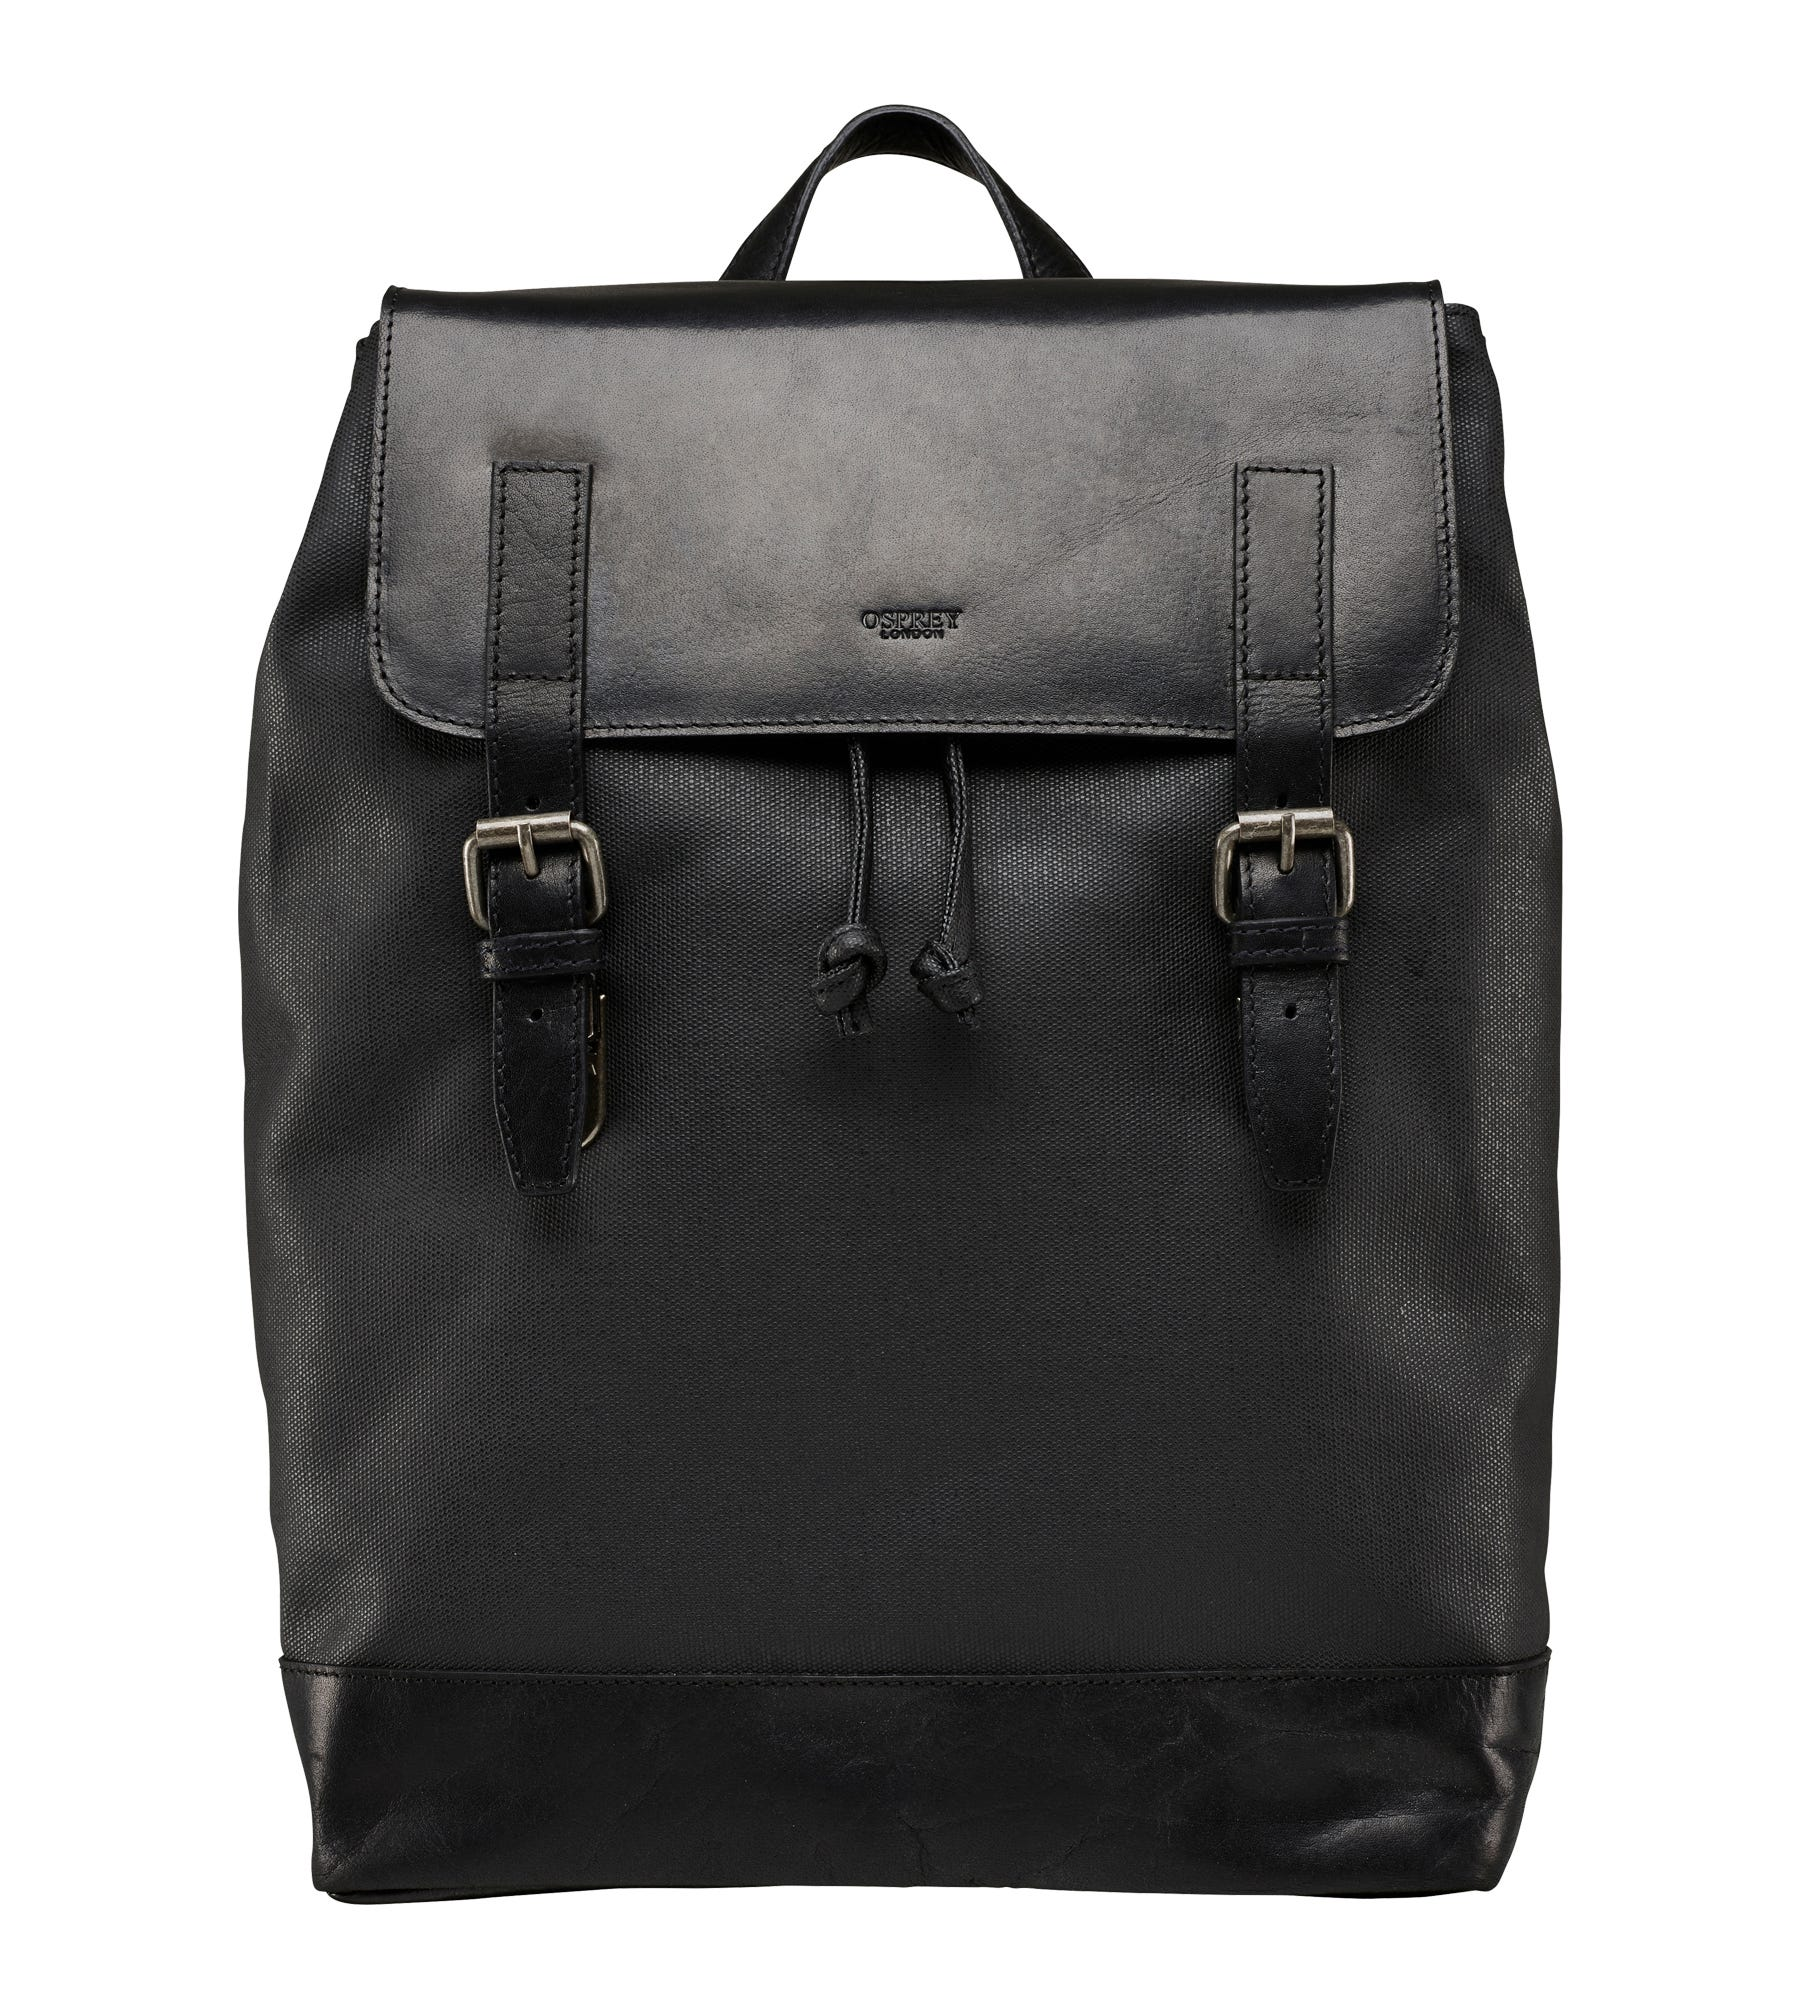 An image of The Grantham Waxed Canvas & Leather Backpack